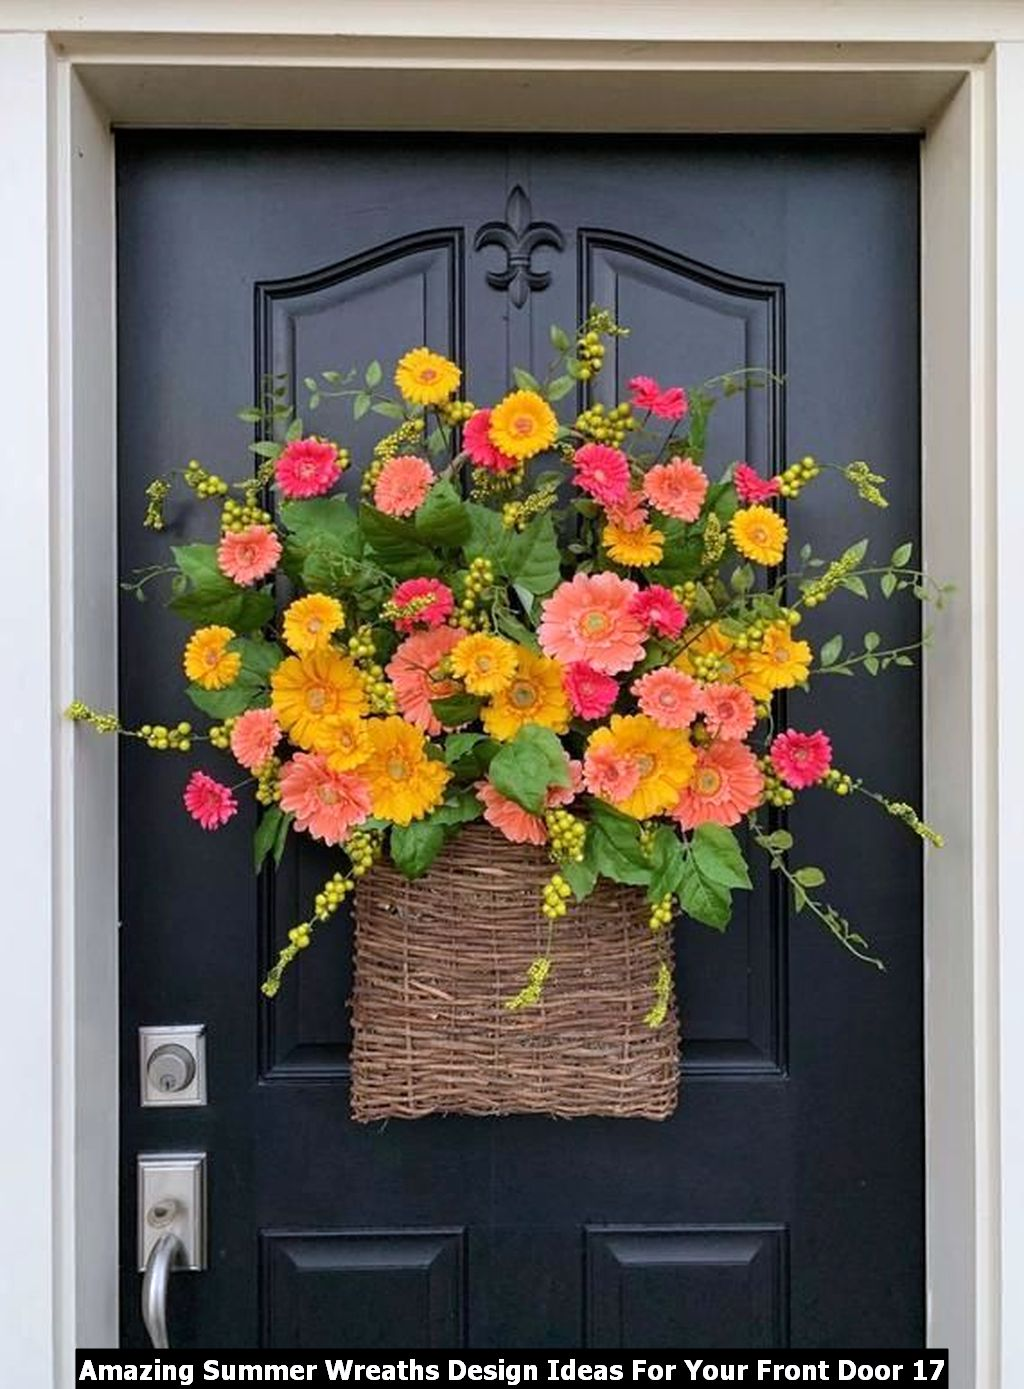 Amazing Summer Wreaths Design Ideas For Your Front Door 17